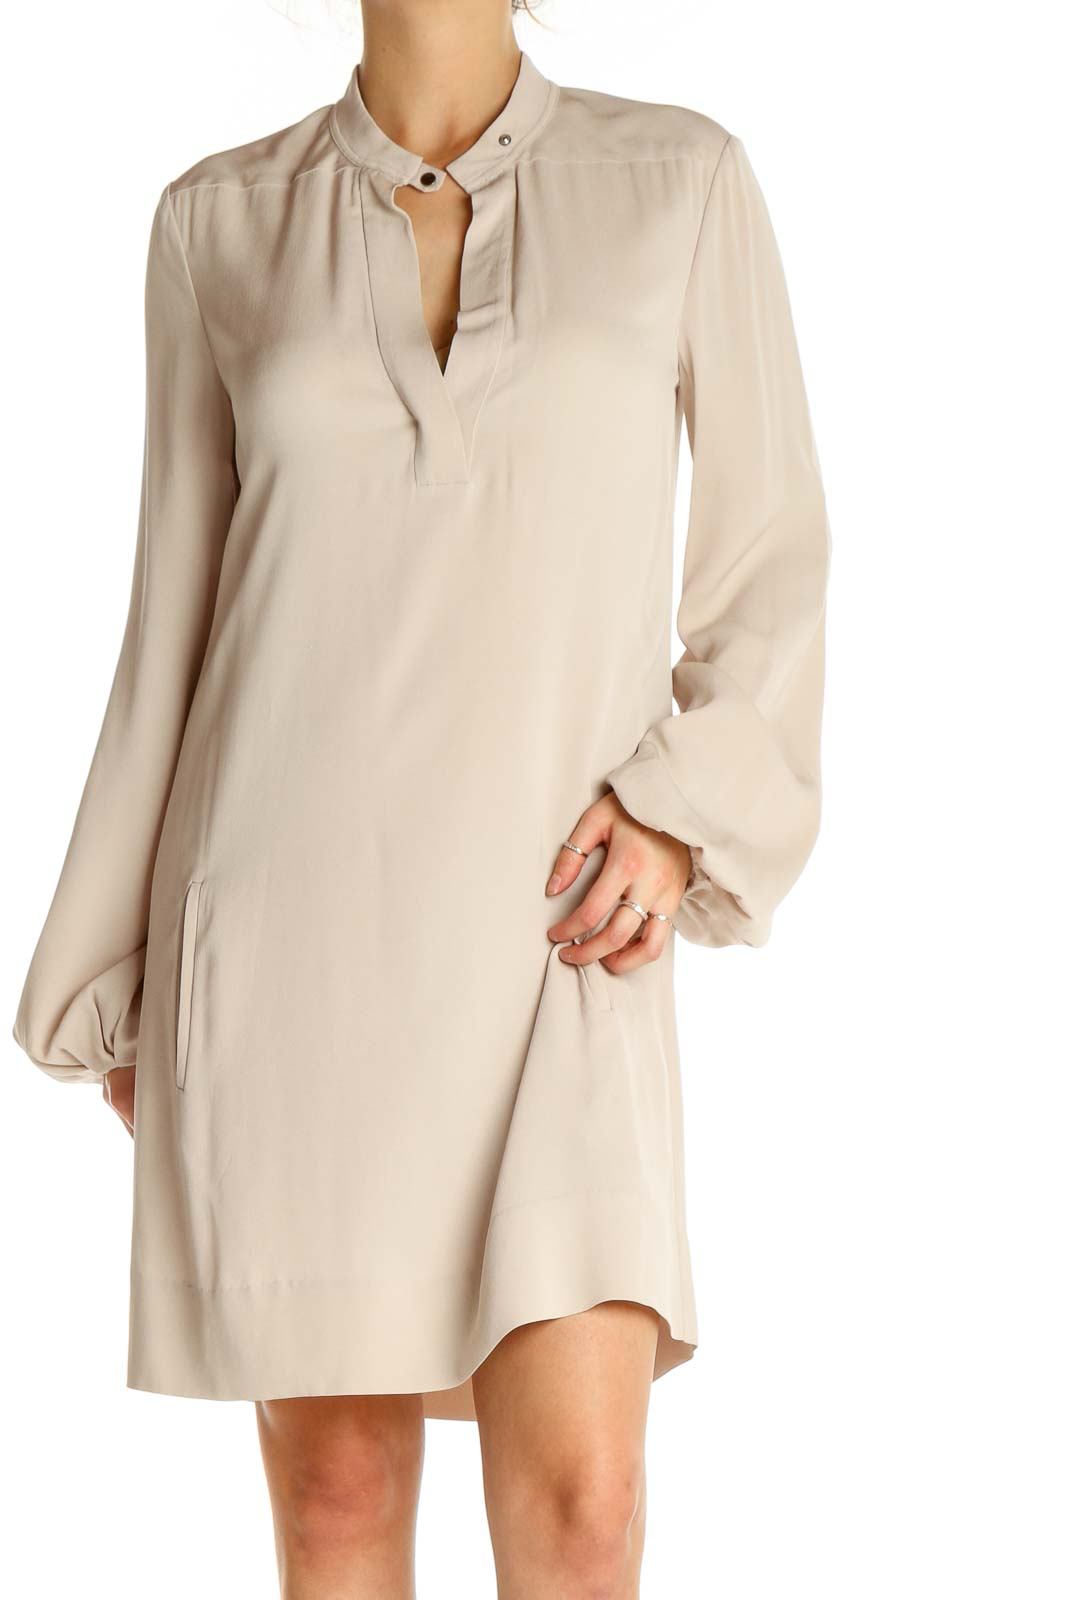 Beige Solid Day Sheath Dress Front